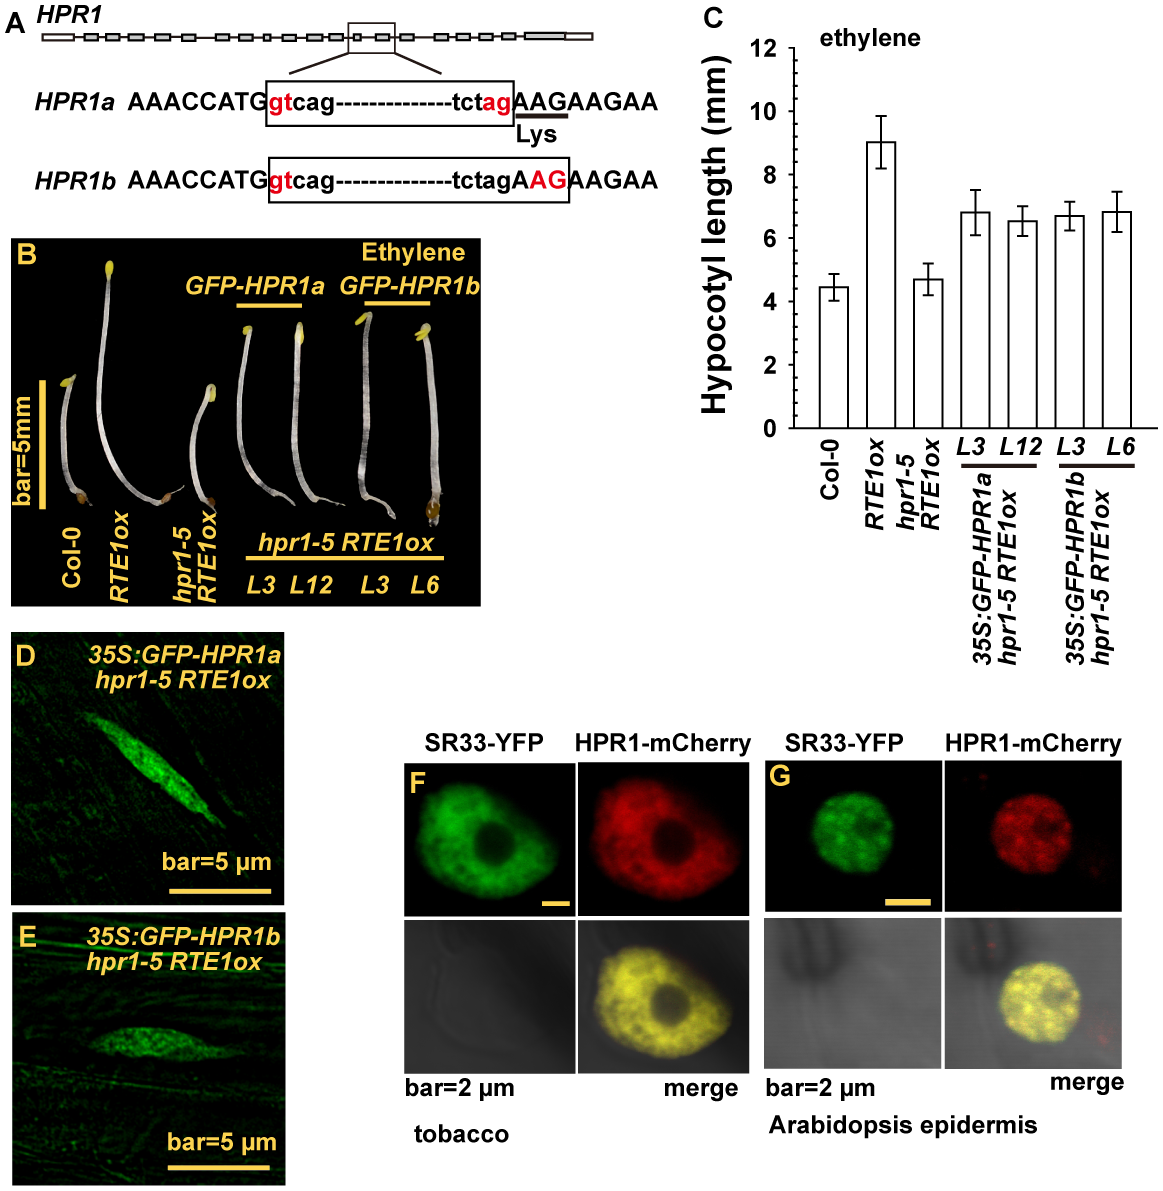 <i>HPR1</i> produces 2 transcripts and HPR1 subcellular localization.